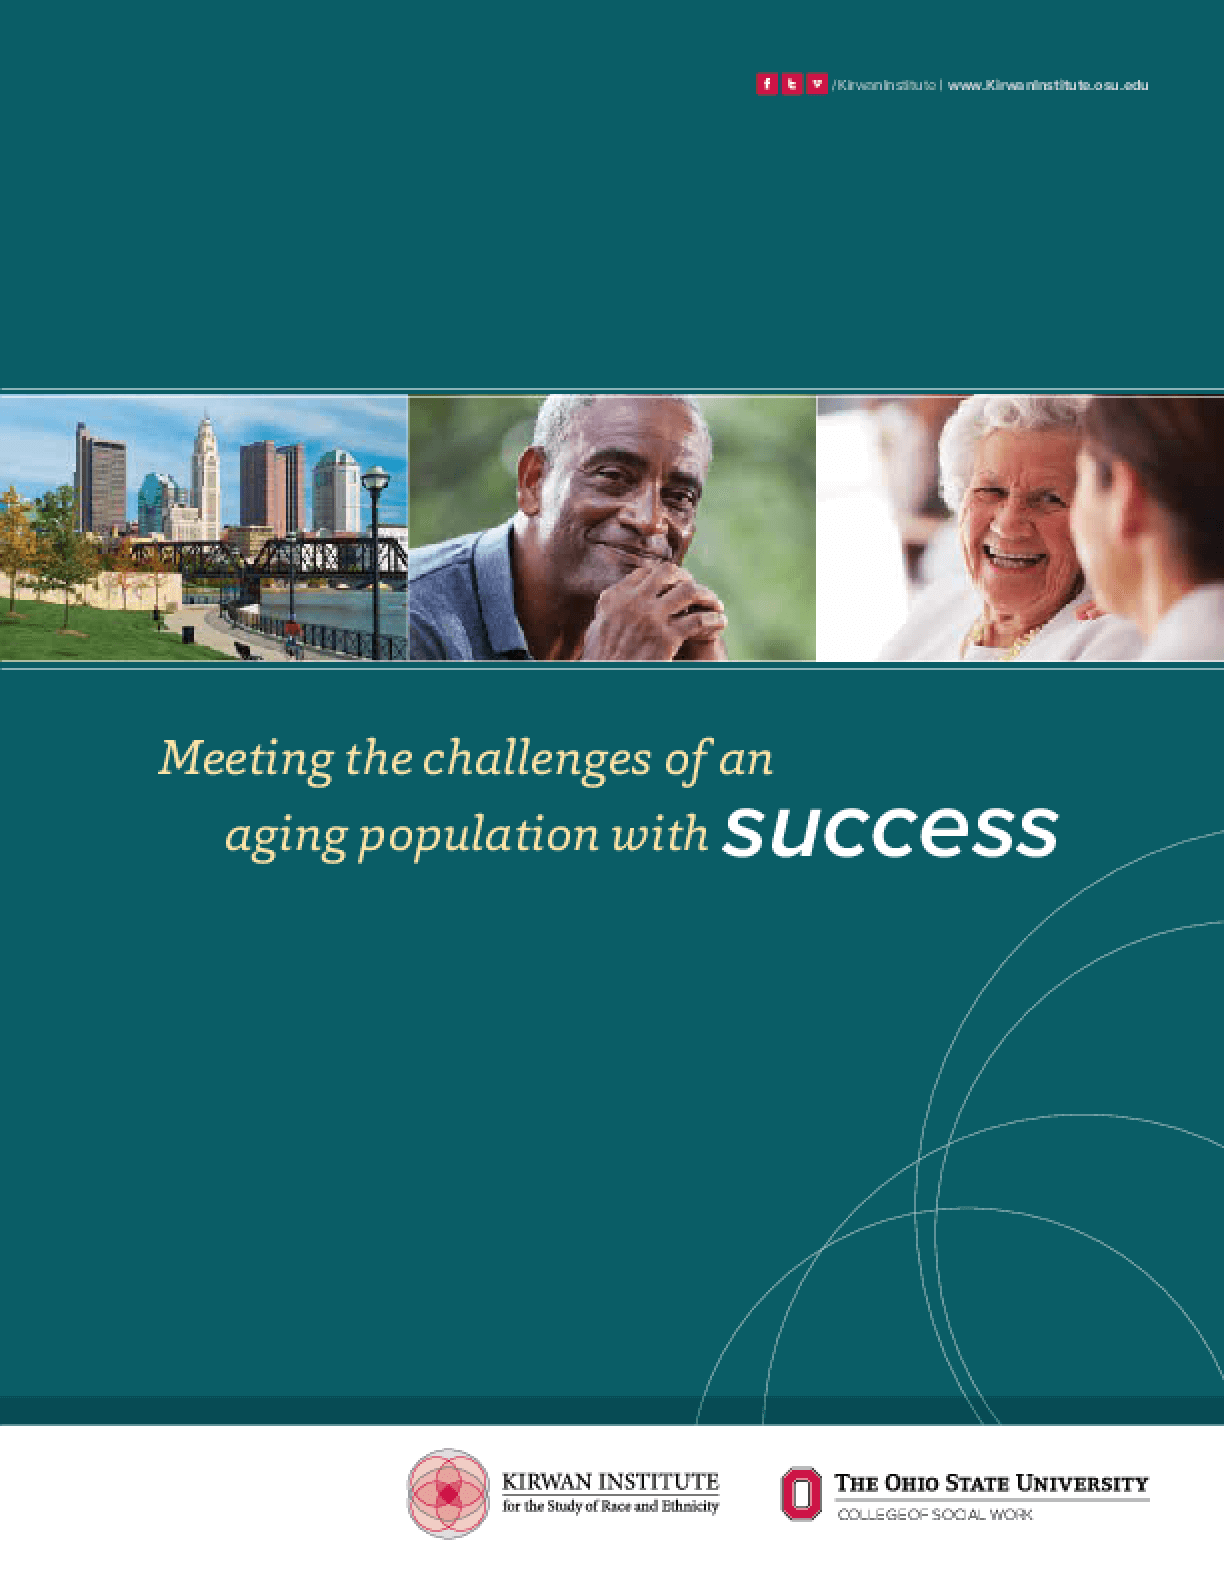 Meeting the Challenges of an Aging Population with Success